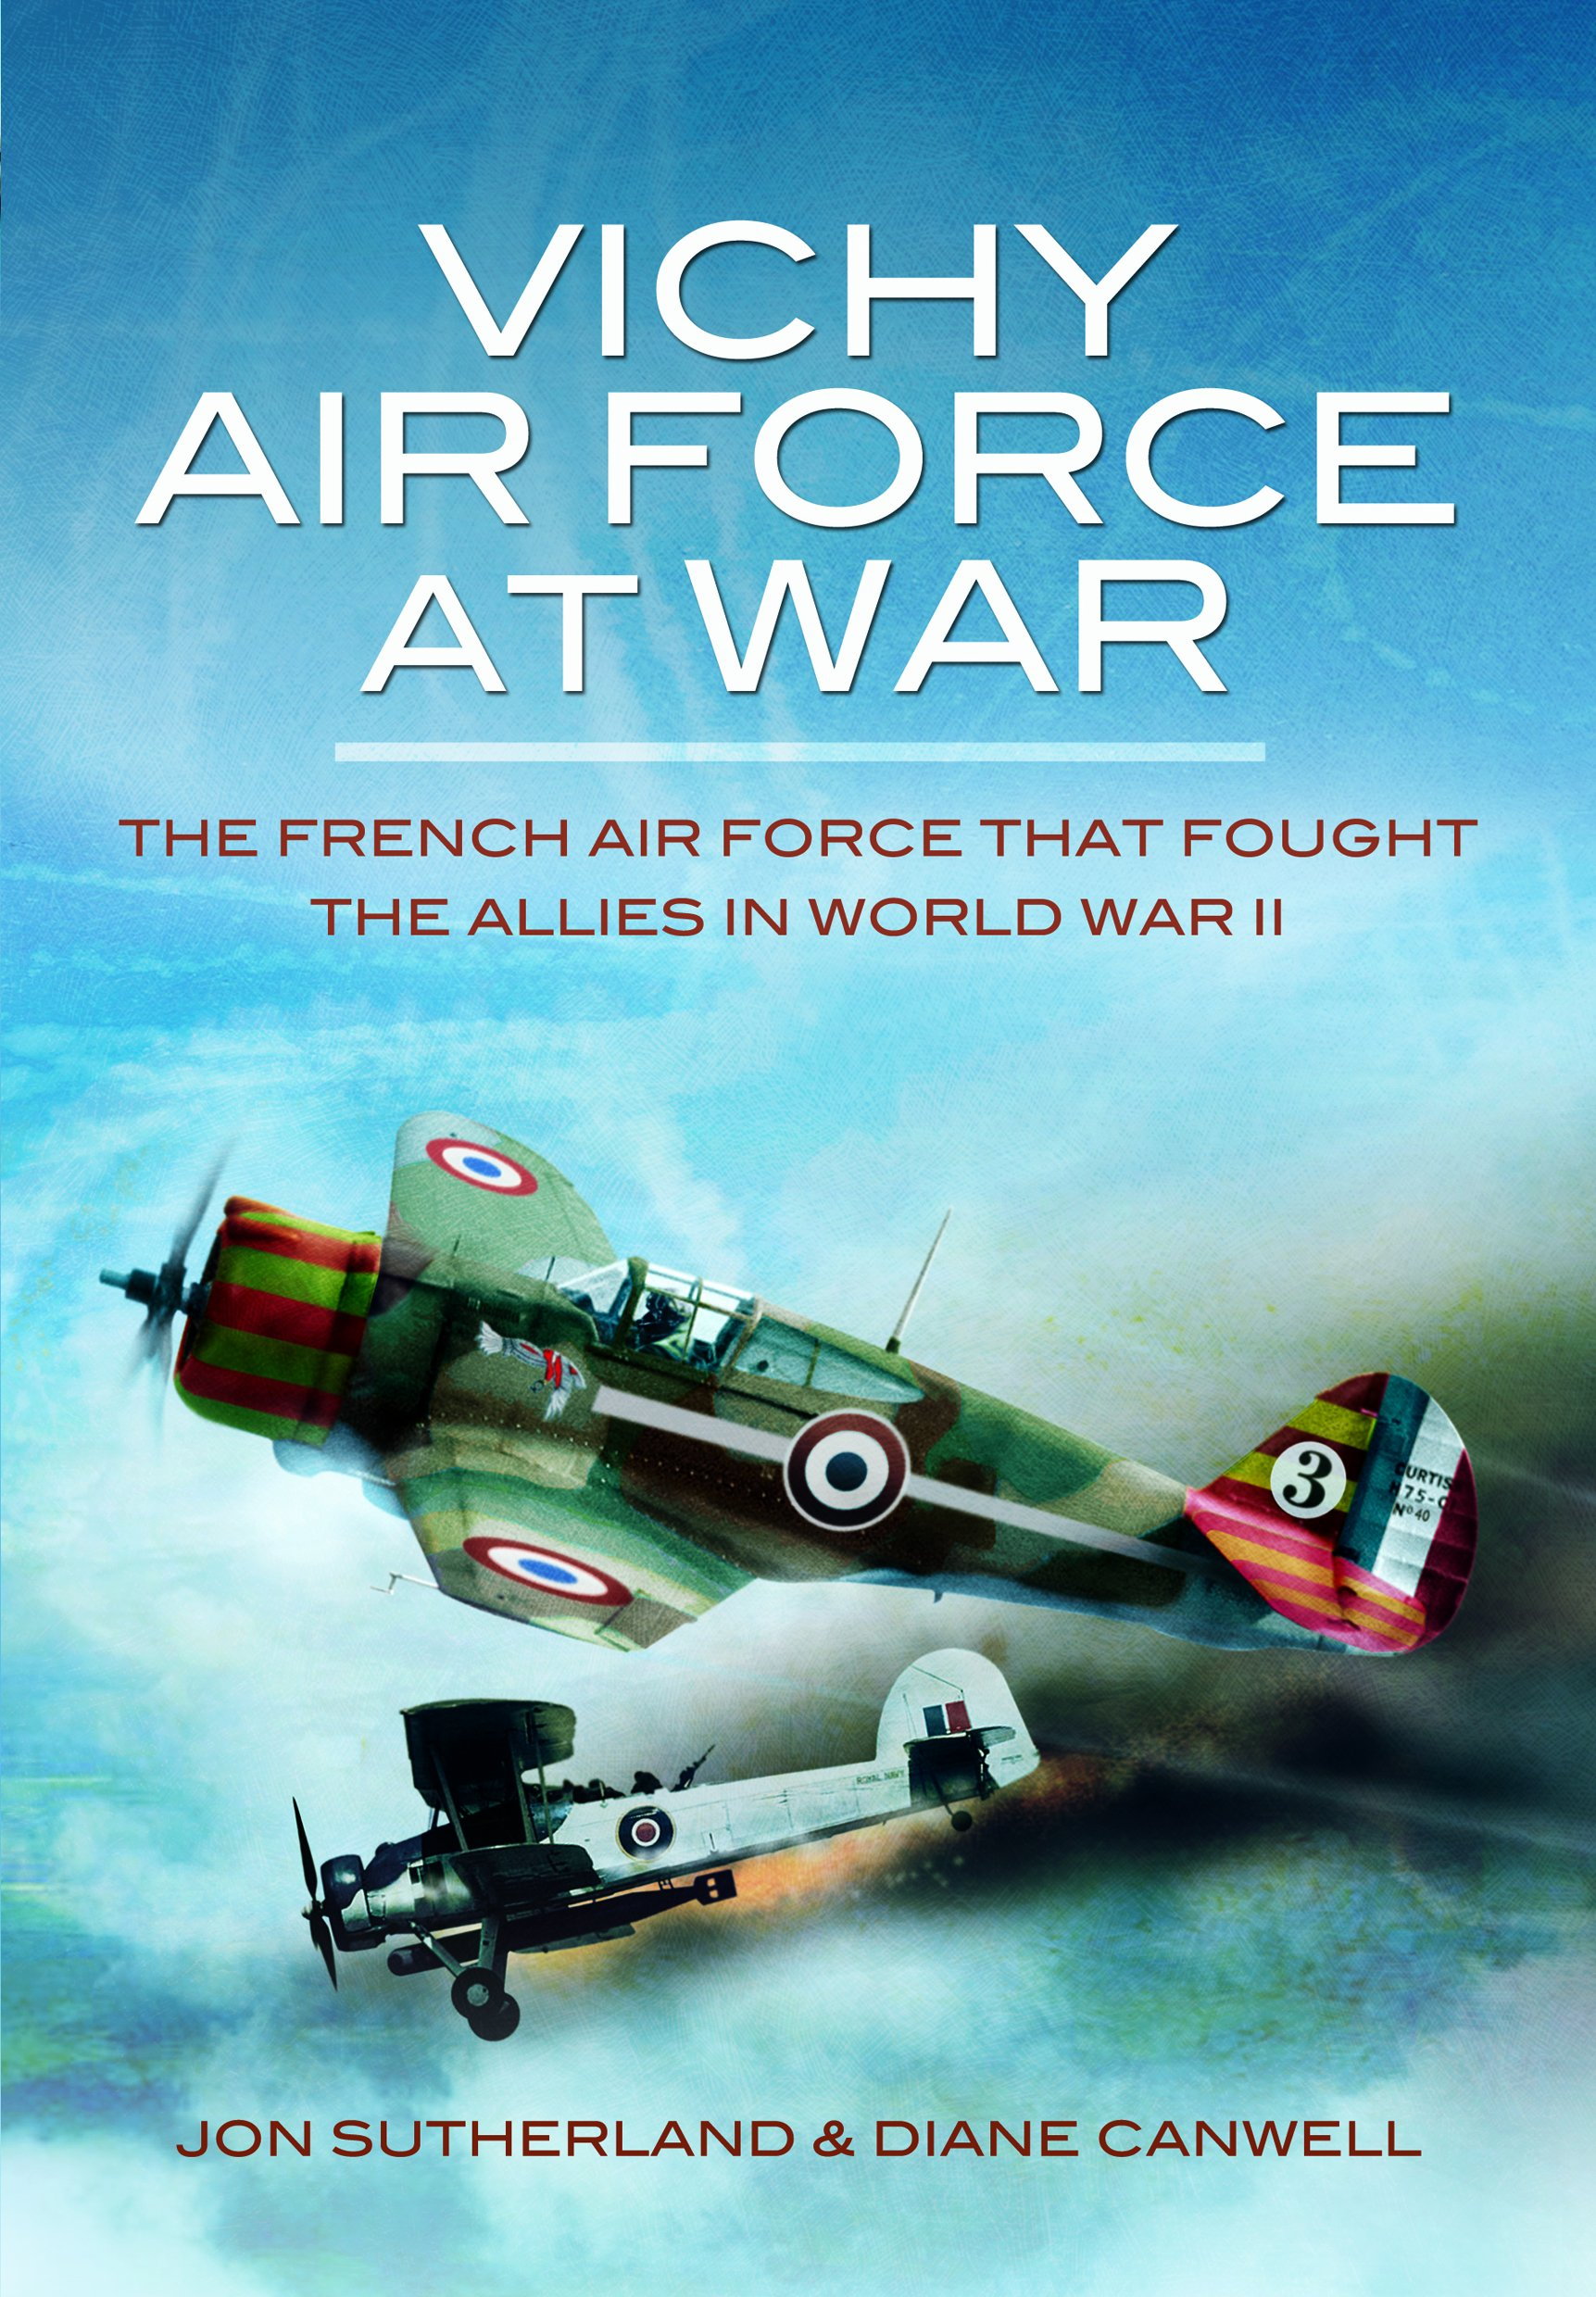 vichy air force at war the french air force that fought the allies